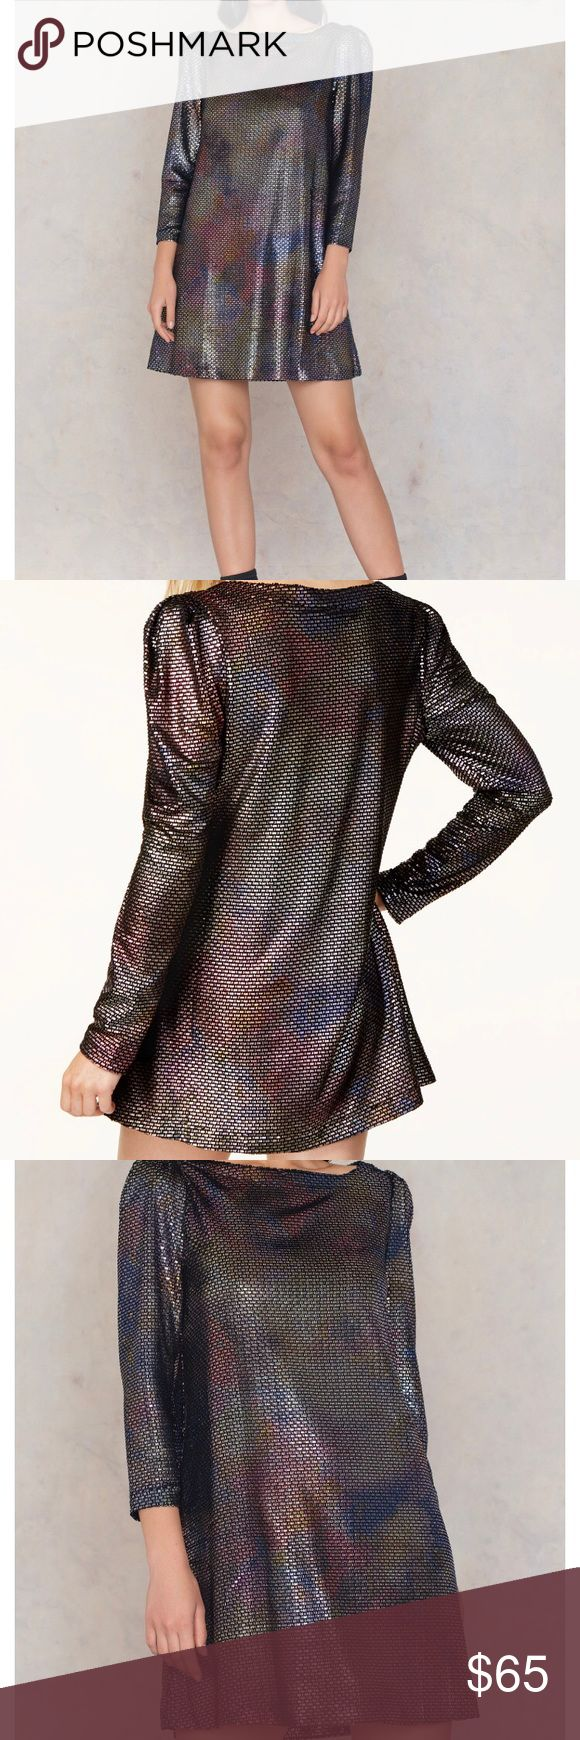 Free people diamonds are forever cute mini dress Shine on in this long sleeve metallic mini dress featuring structured shoulders and a swingy silhouette. Side pockets Hand wash  Length: 33 in Sleeve Length: 21.5 in Free People Dresses Mini